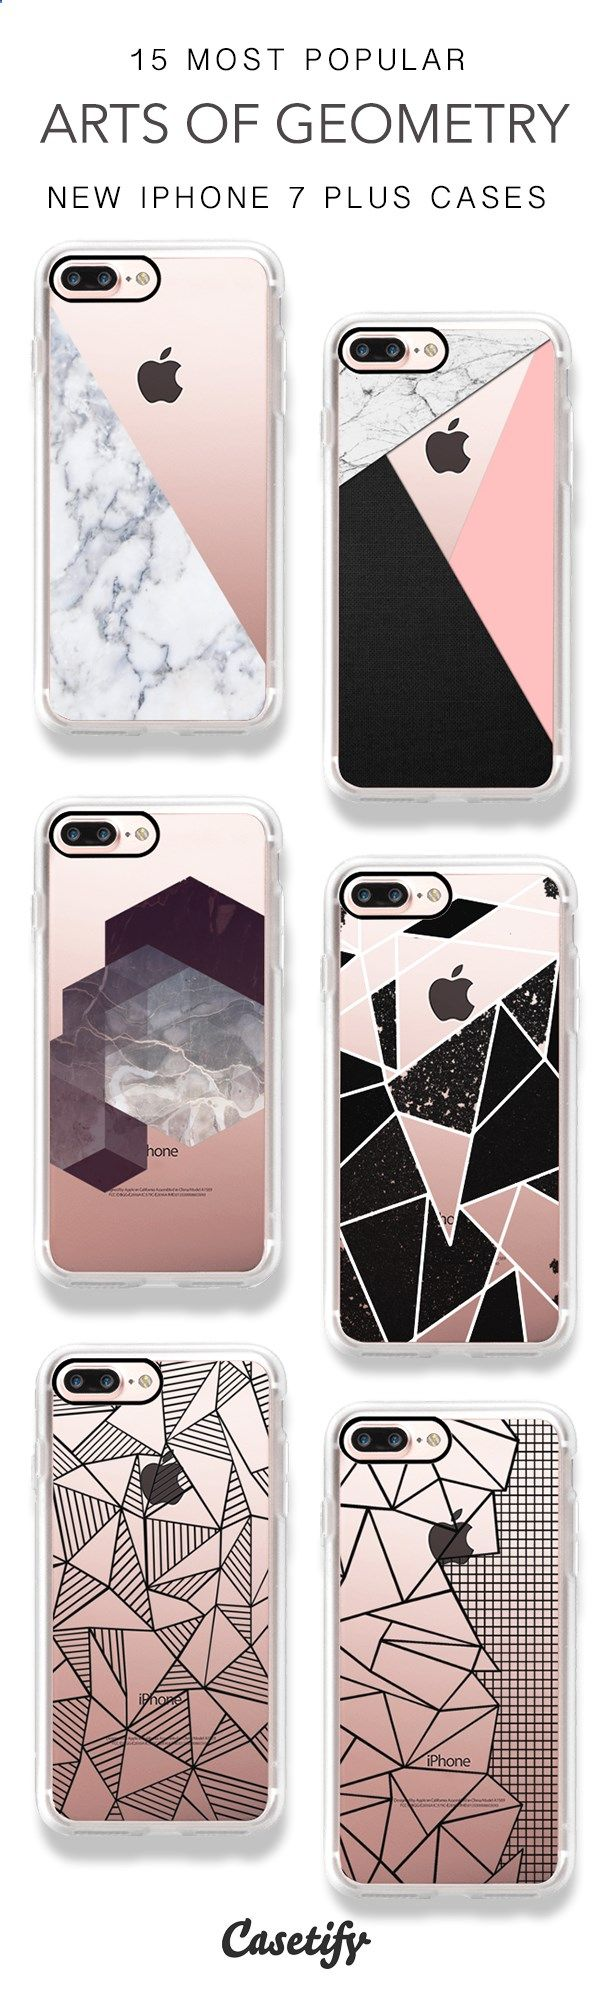 Phone Cases - Explore the Arts of Geometry! 15 Most Popular Marble & Grids iPhone 7 Cases and iPhone 7 Plus Cases here > www.casetify.com/...